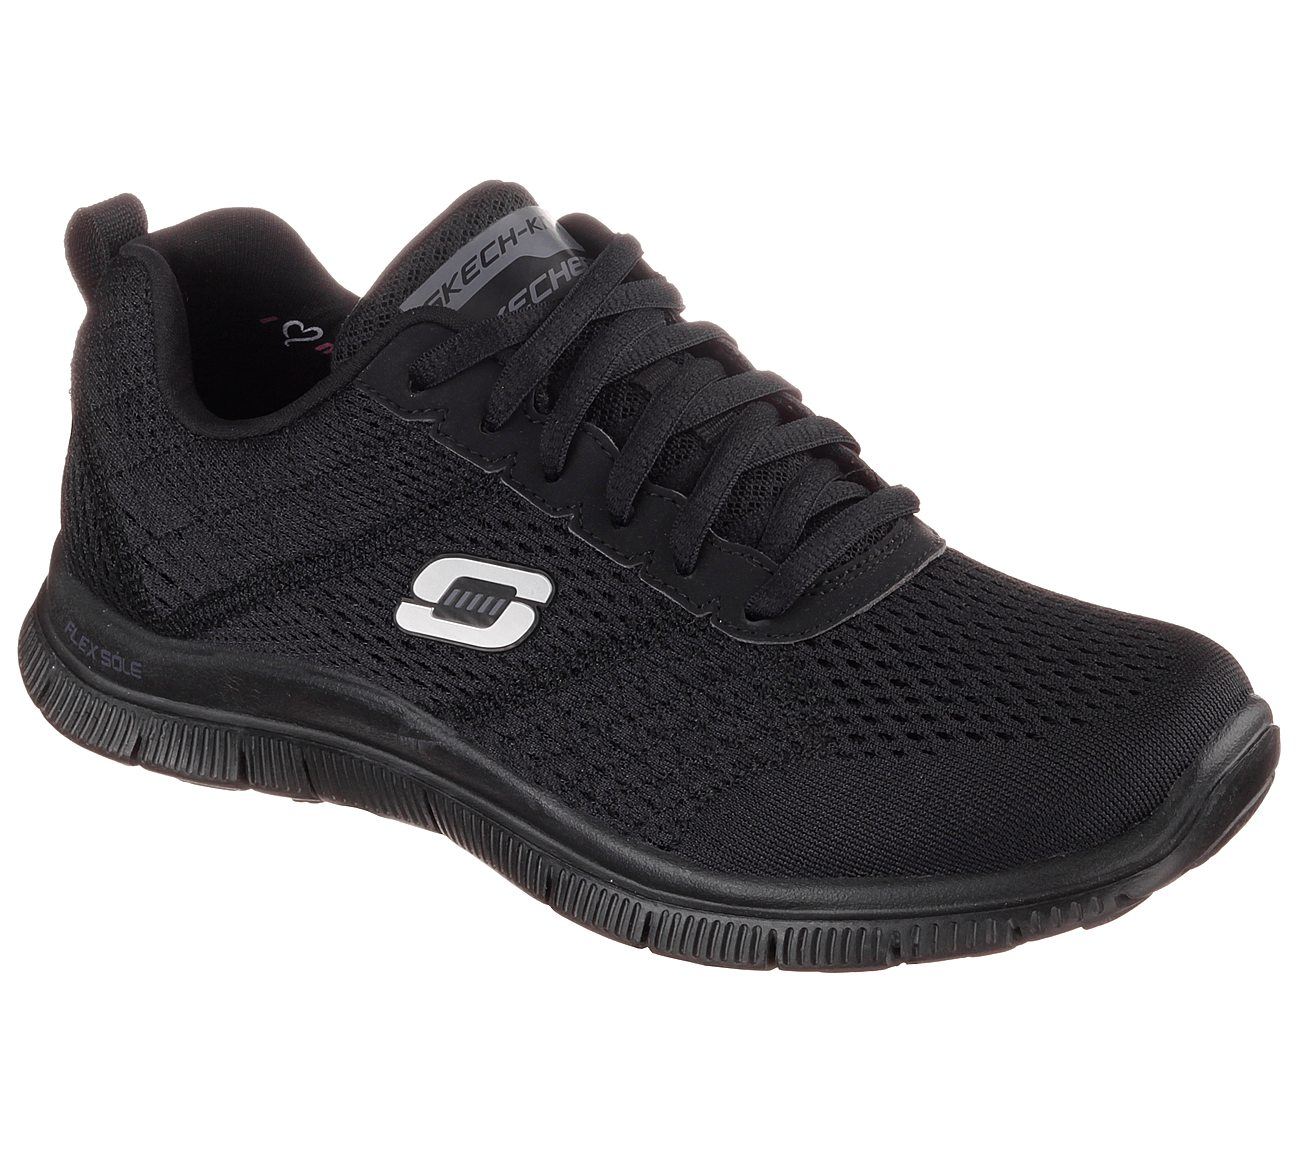 Skechers Women's 8M Memory Foam Flex Sole and 50 similar items